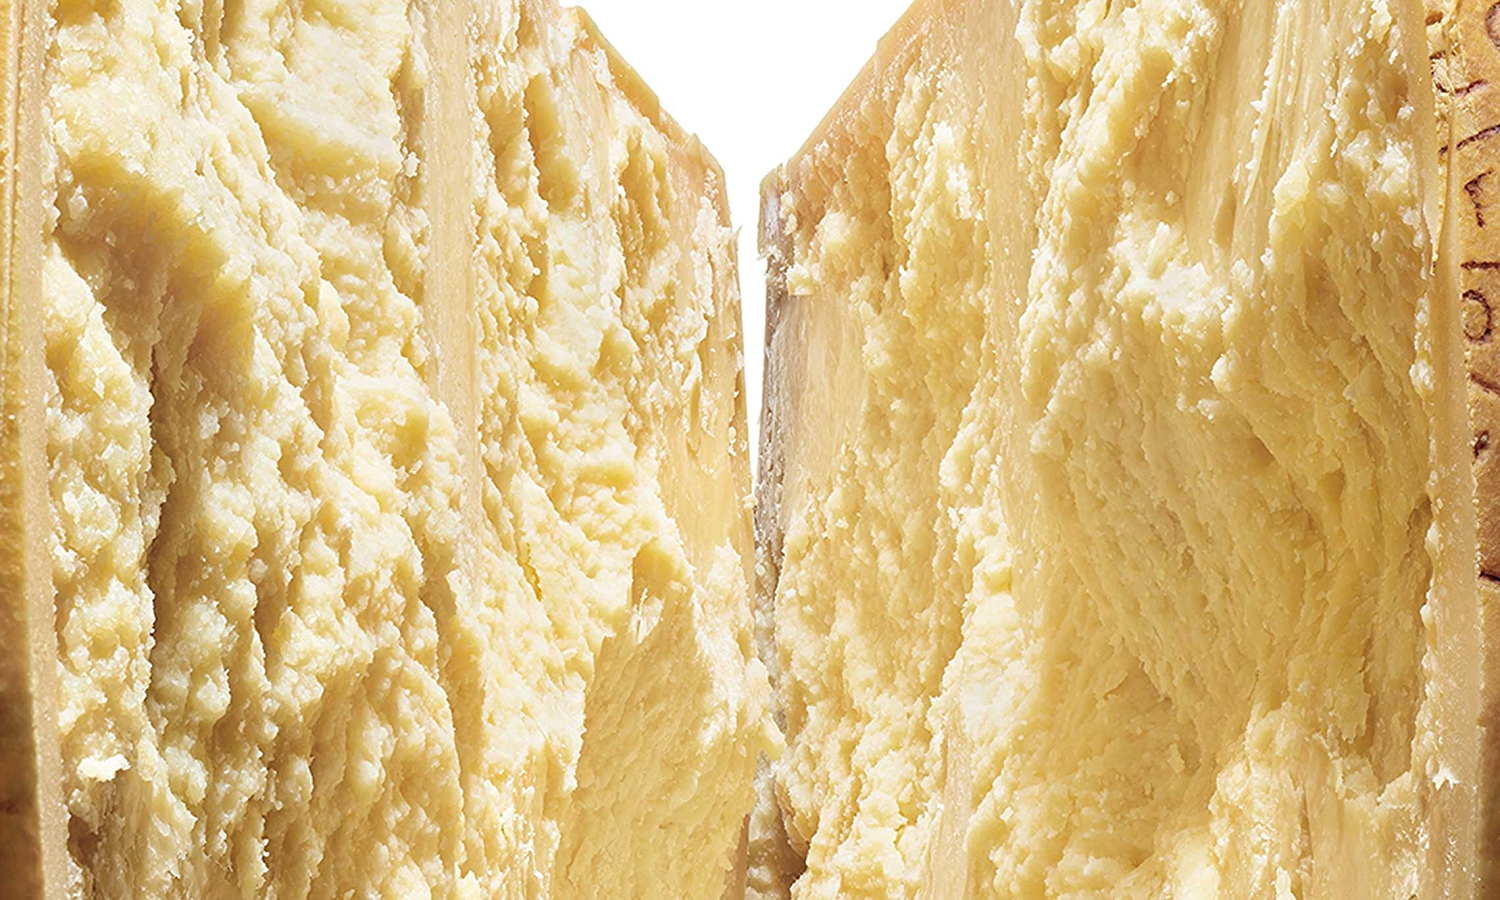 Close up image of a wheel of Parmigiano-Reggiano